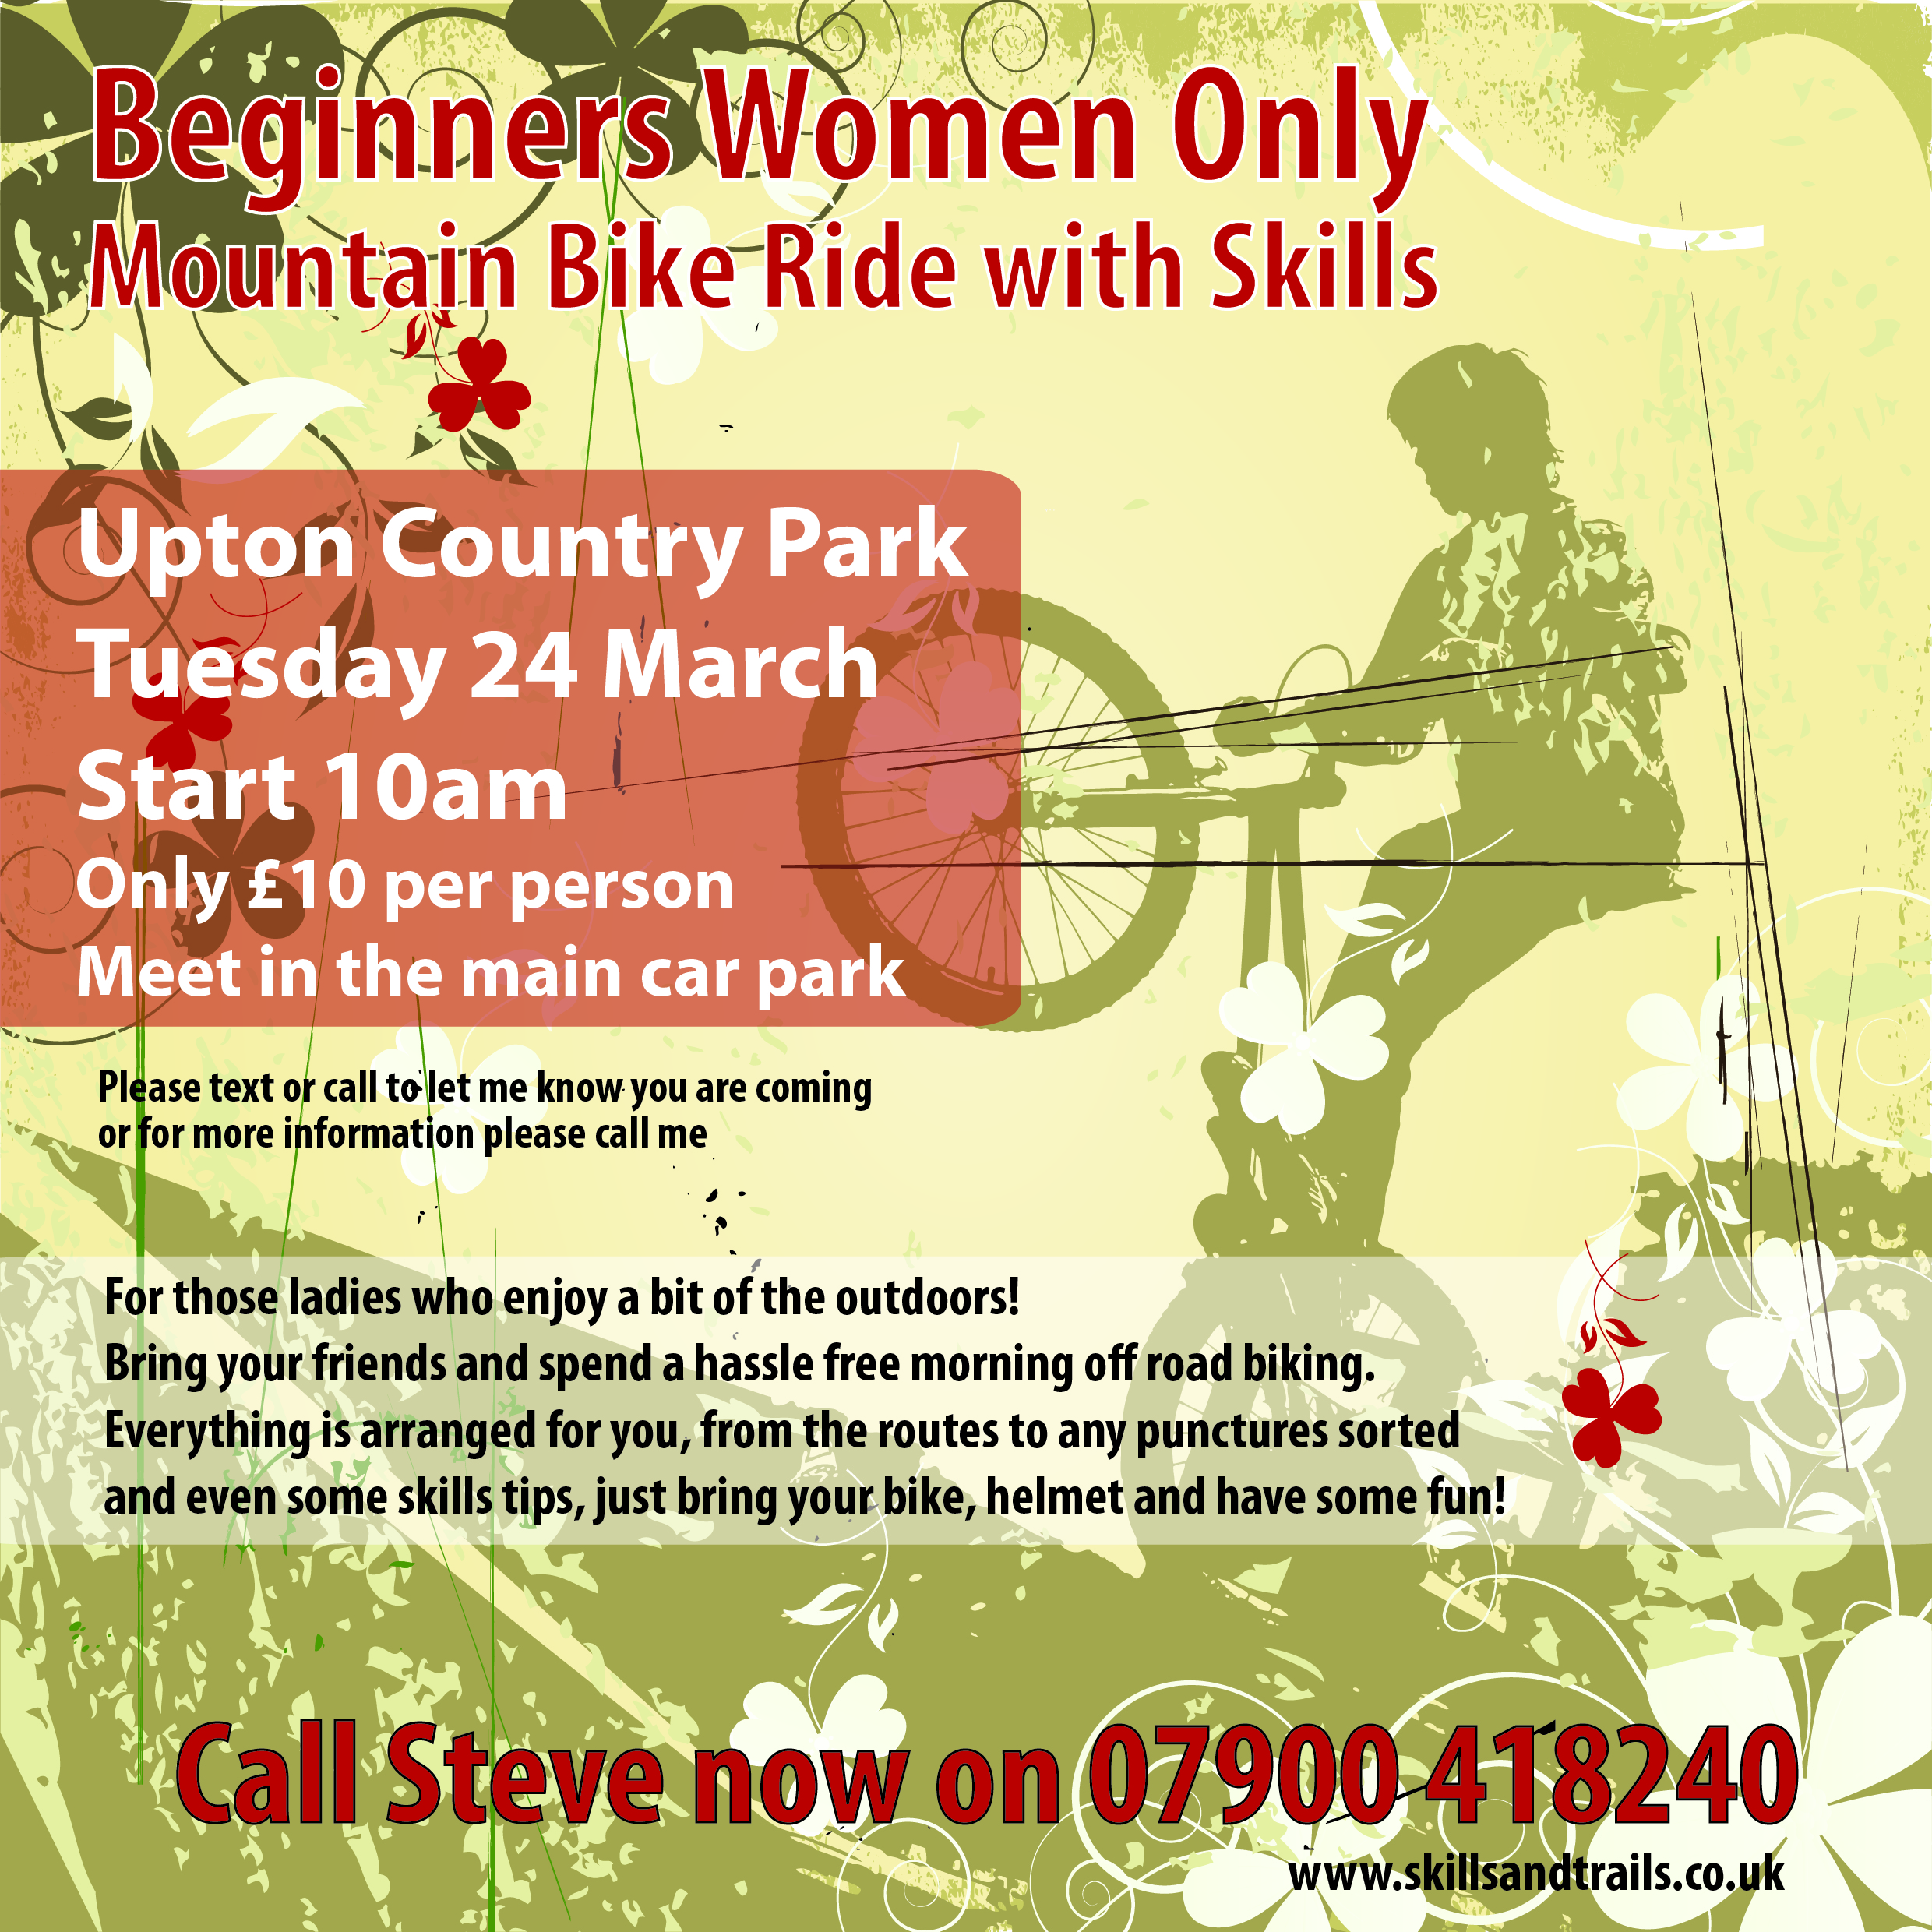 Beginners Women 24 March 2015-01